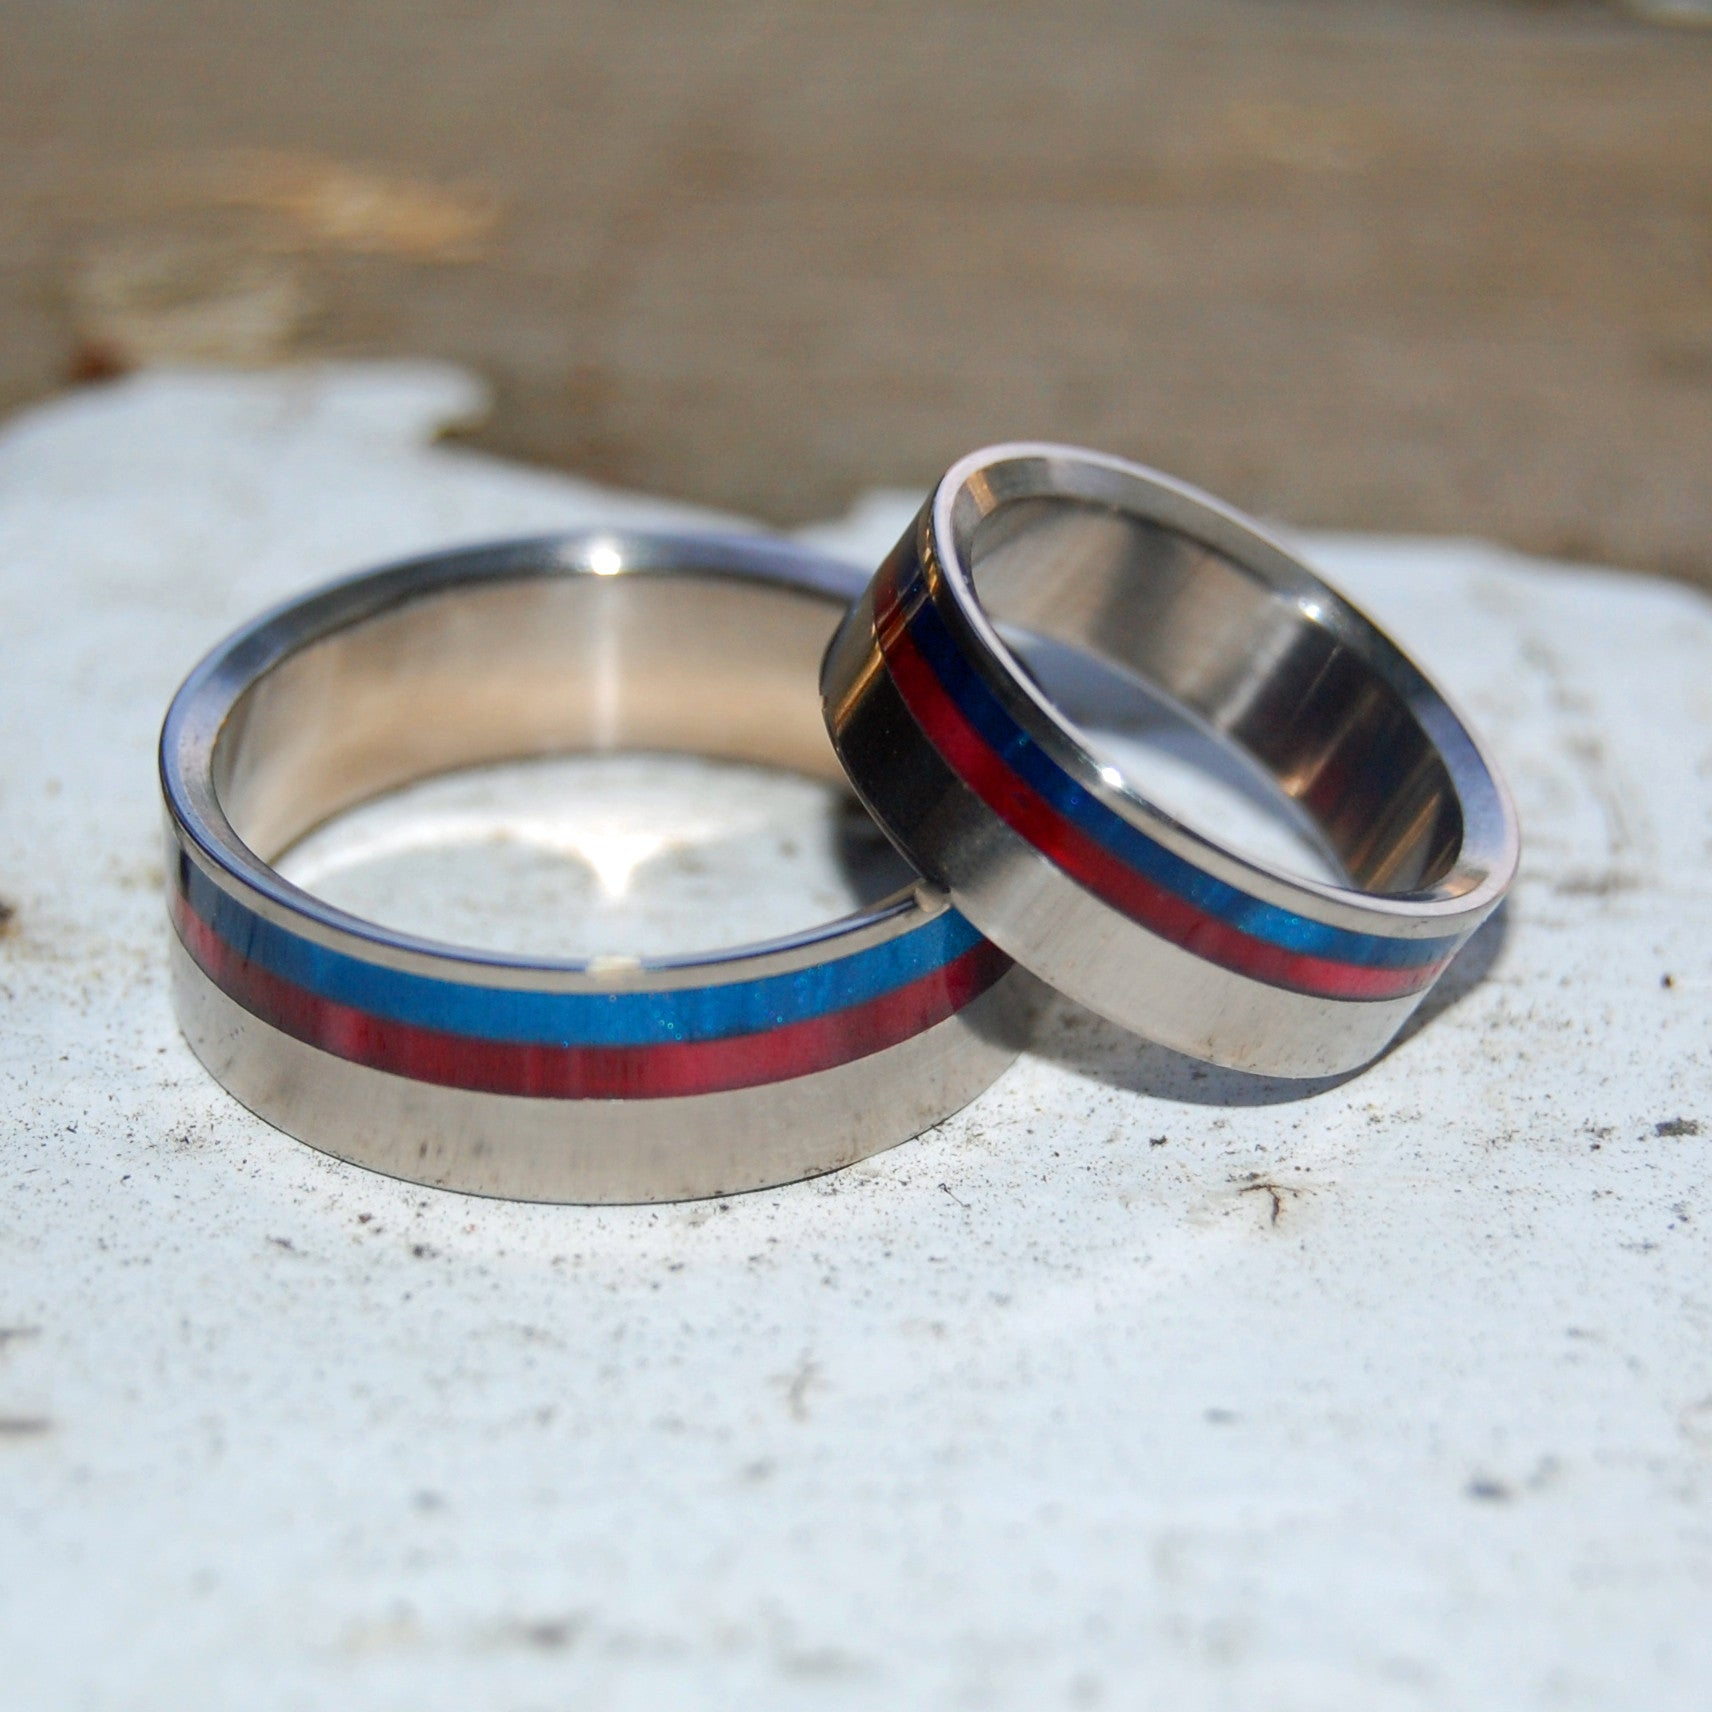 New Wedding Rings Pictures